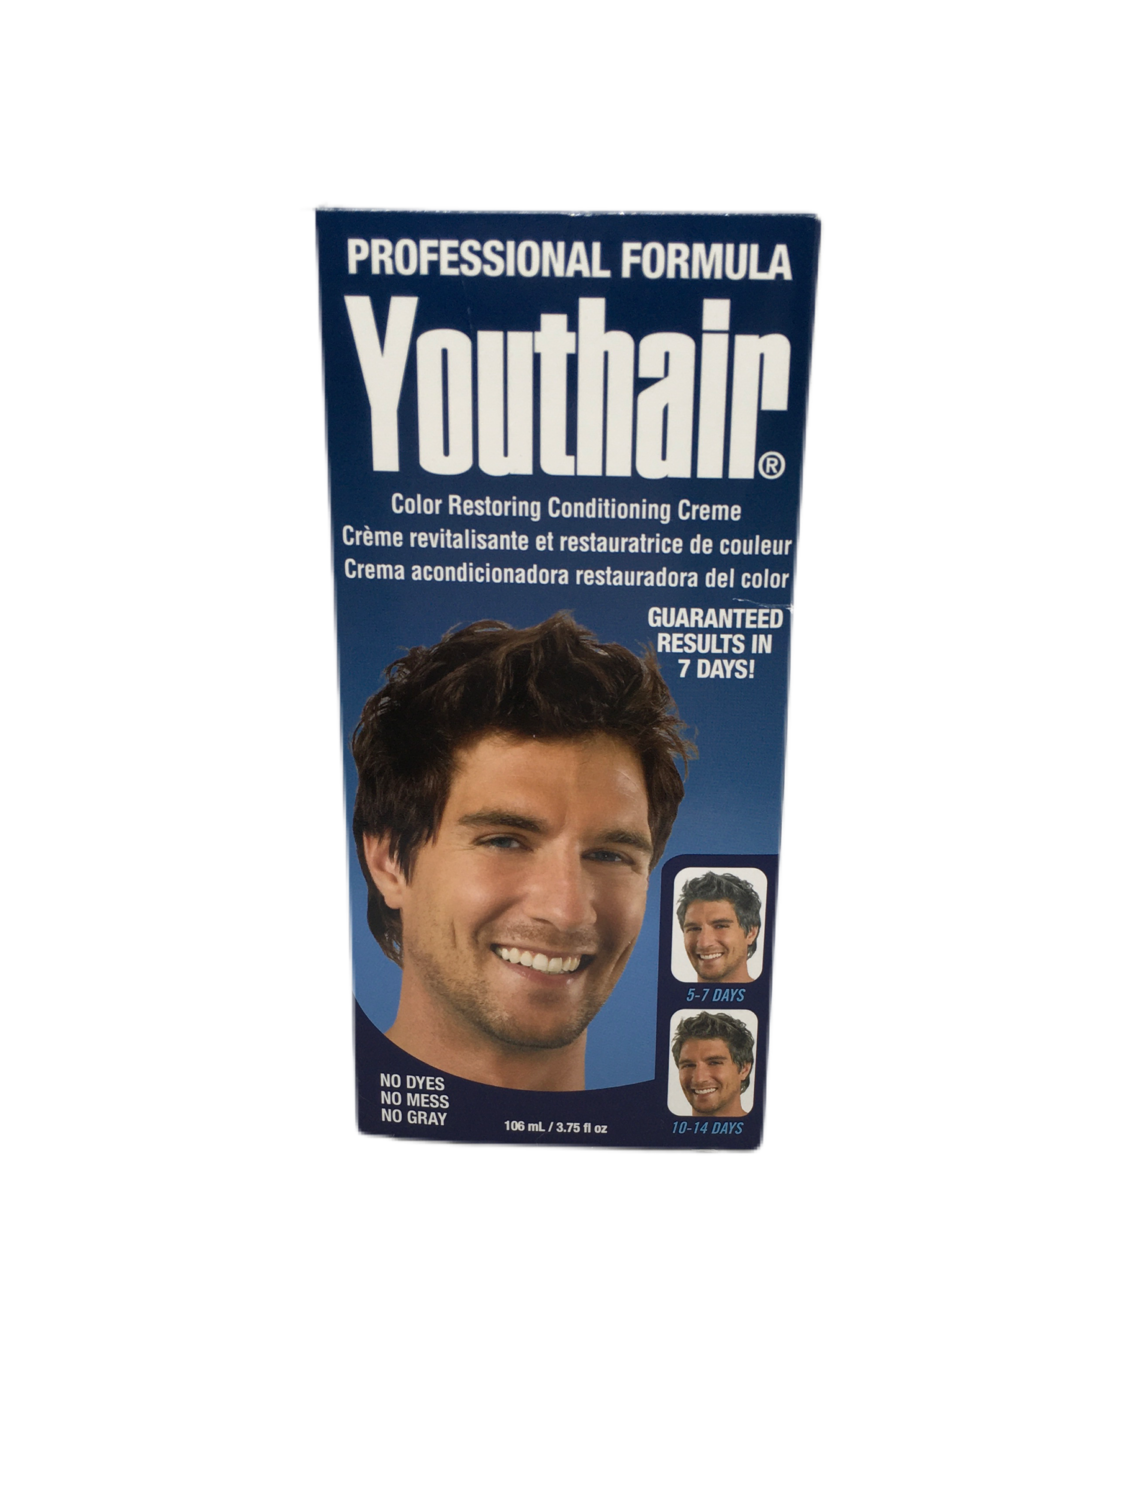 Crema acondicionadora Youthair